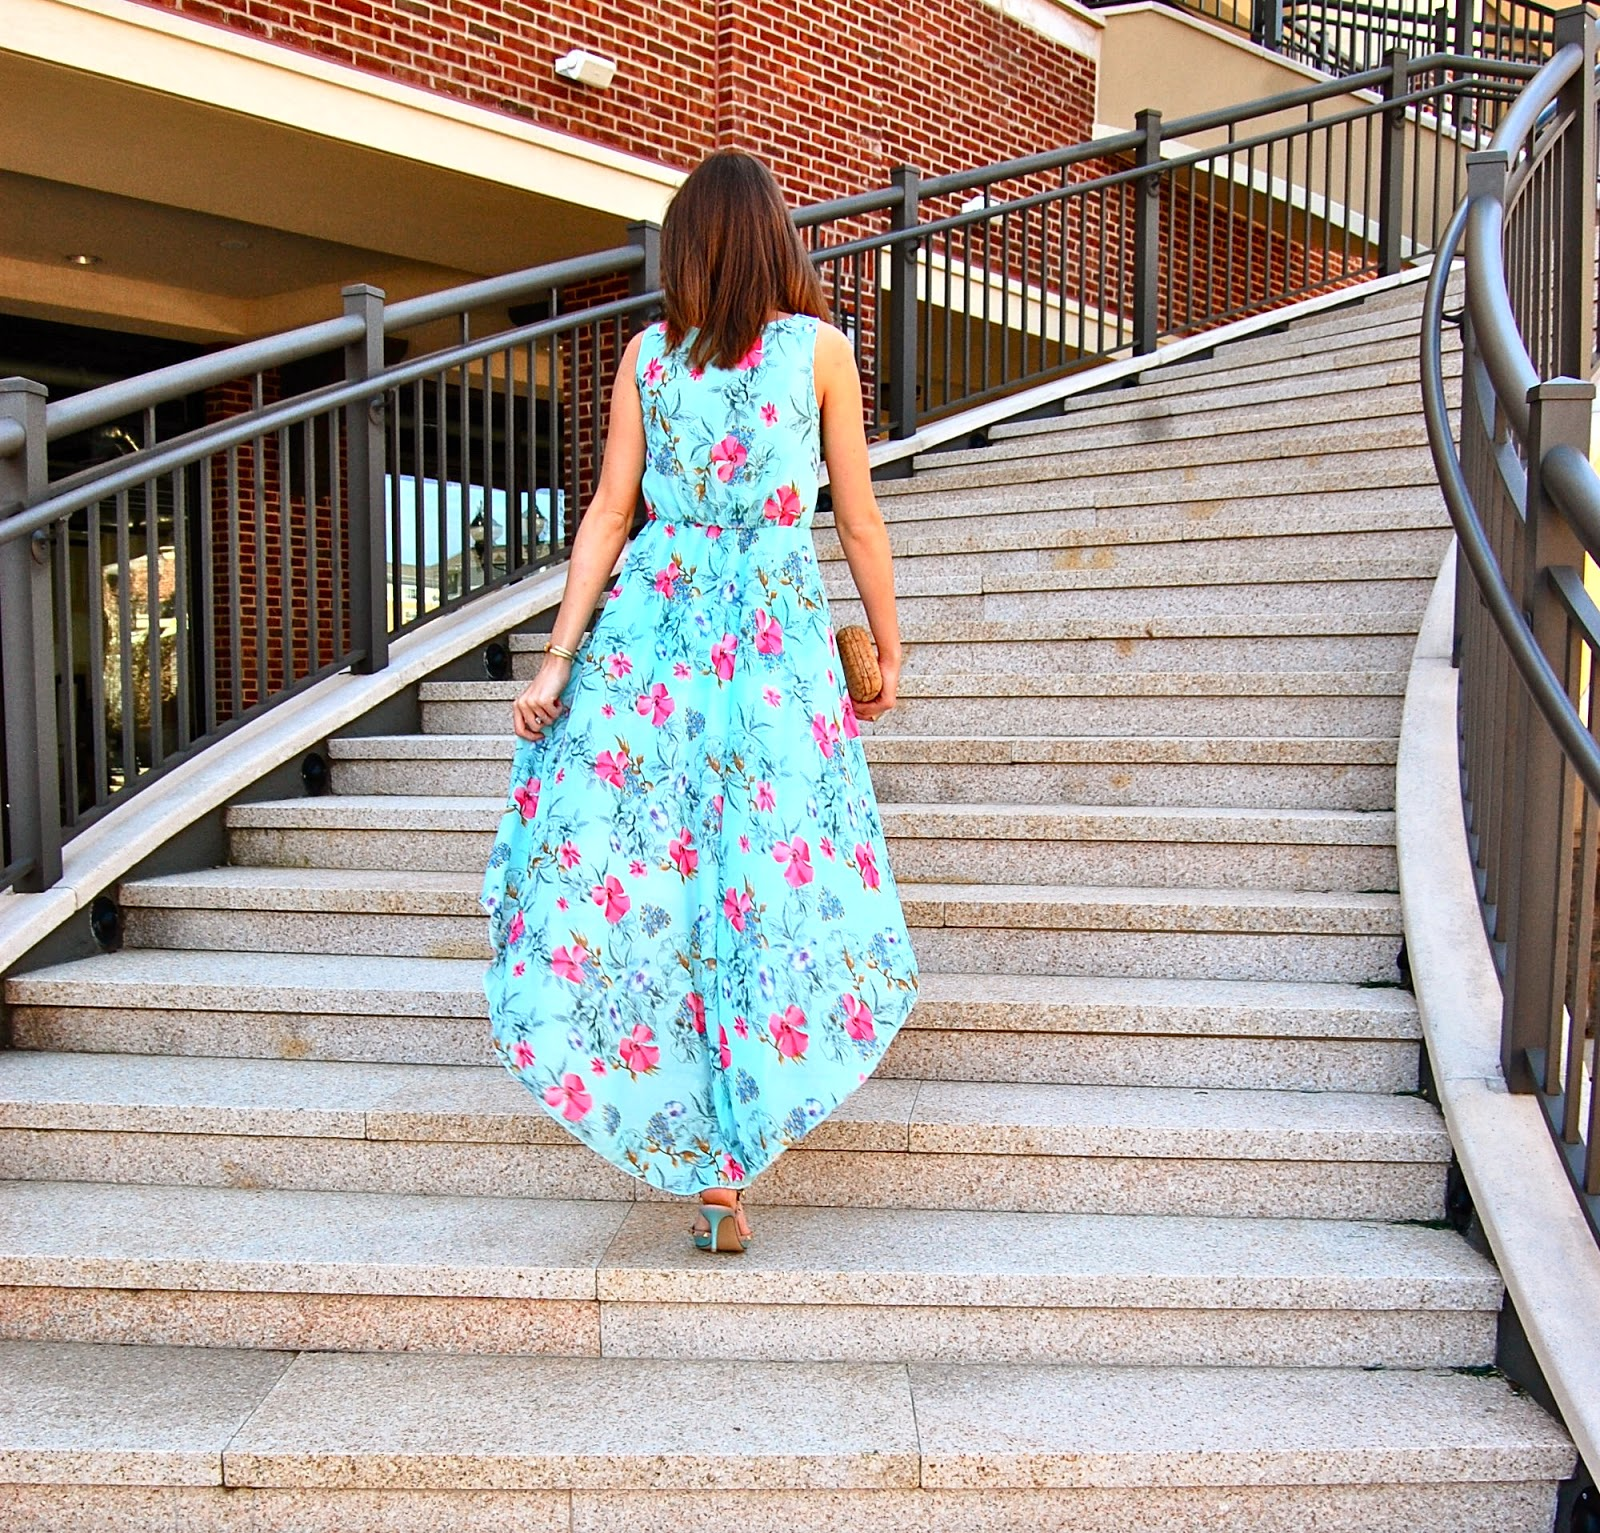 Floral Dress, Persun Mall, Blue Valentino Rockstuds, Cork Clutch, Flowy Dress